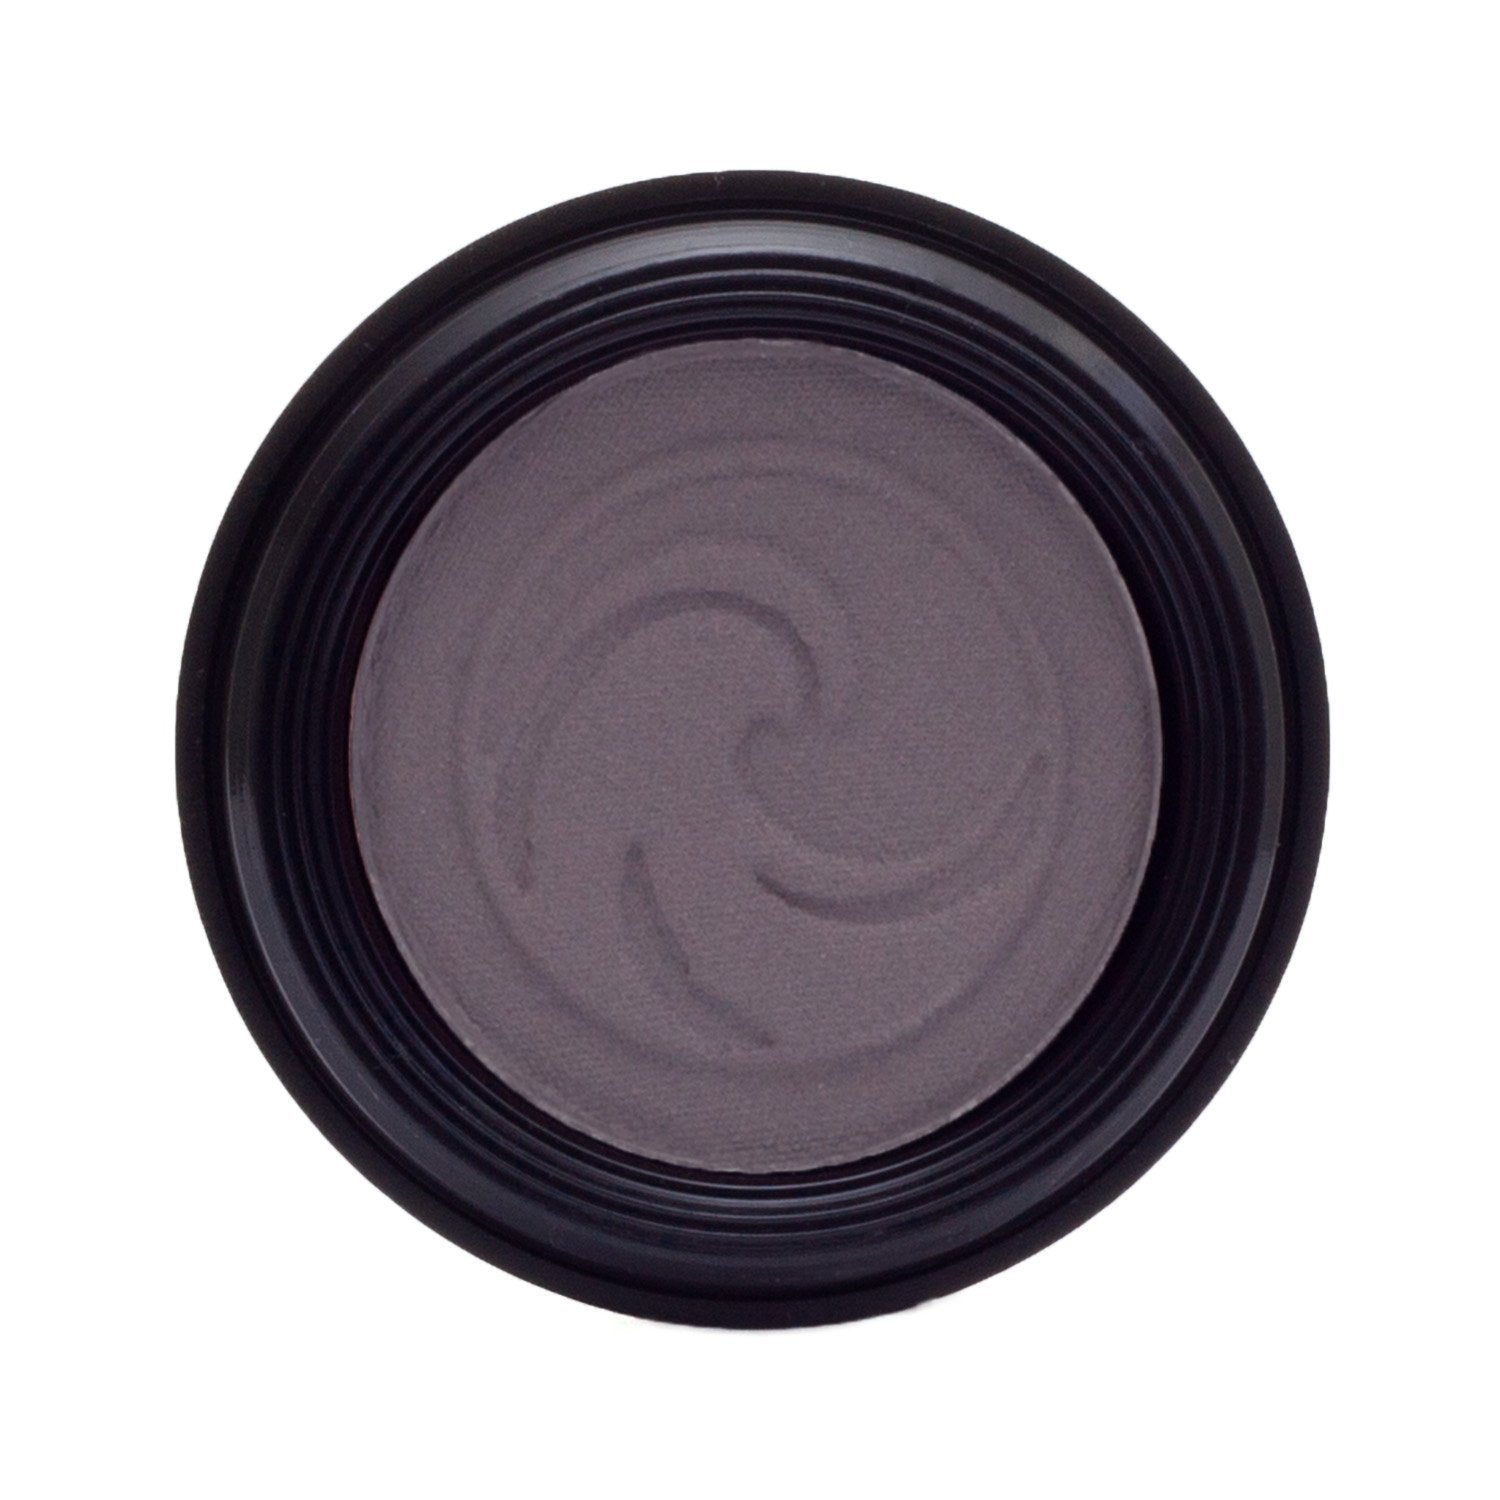 Personal Care - Gabriel - Eyeshadow, Charcoal, .07oz